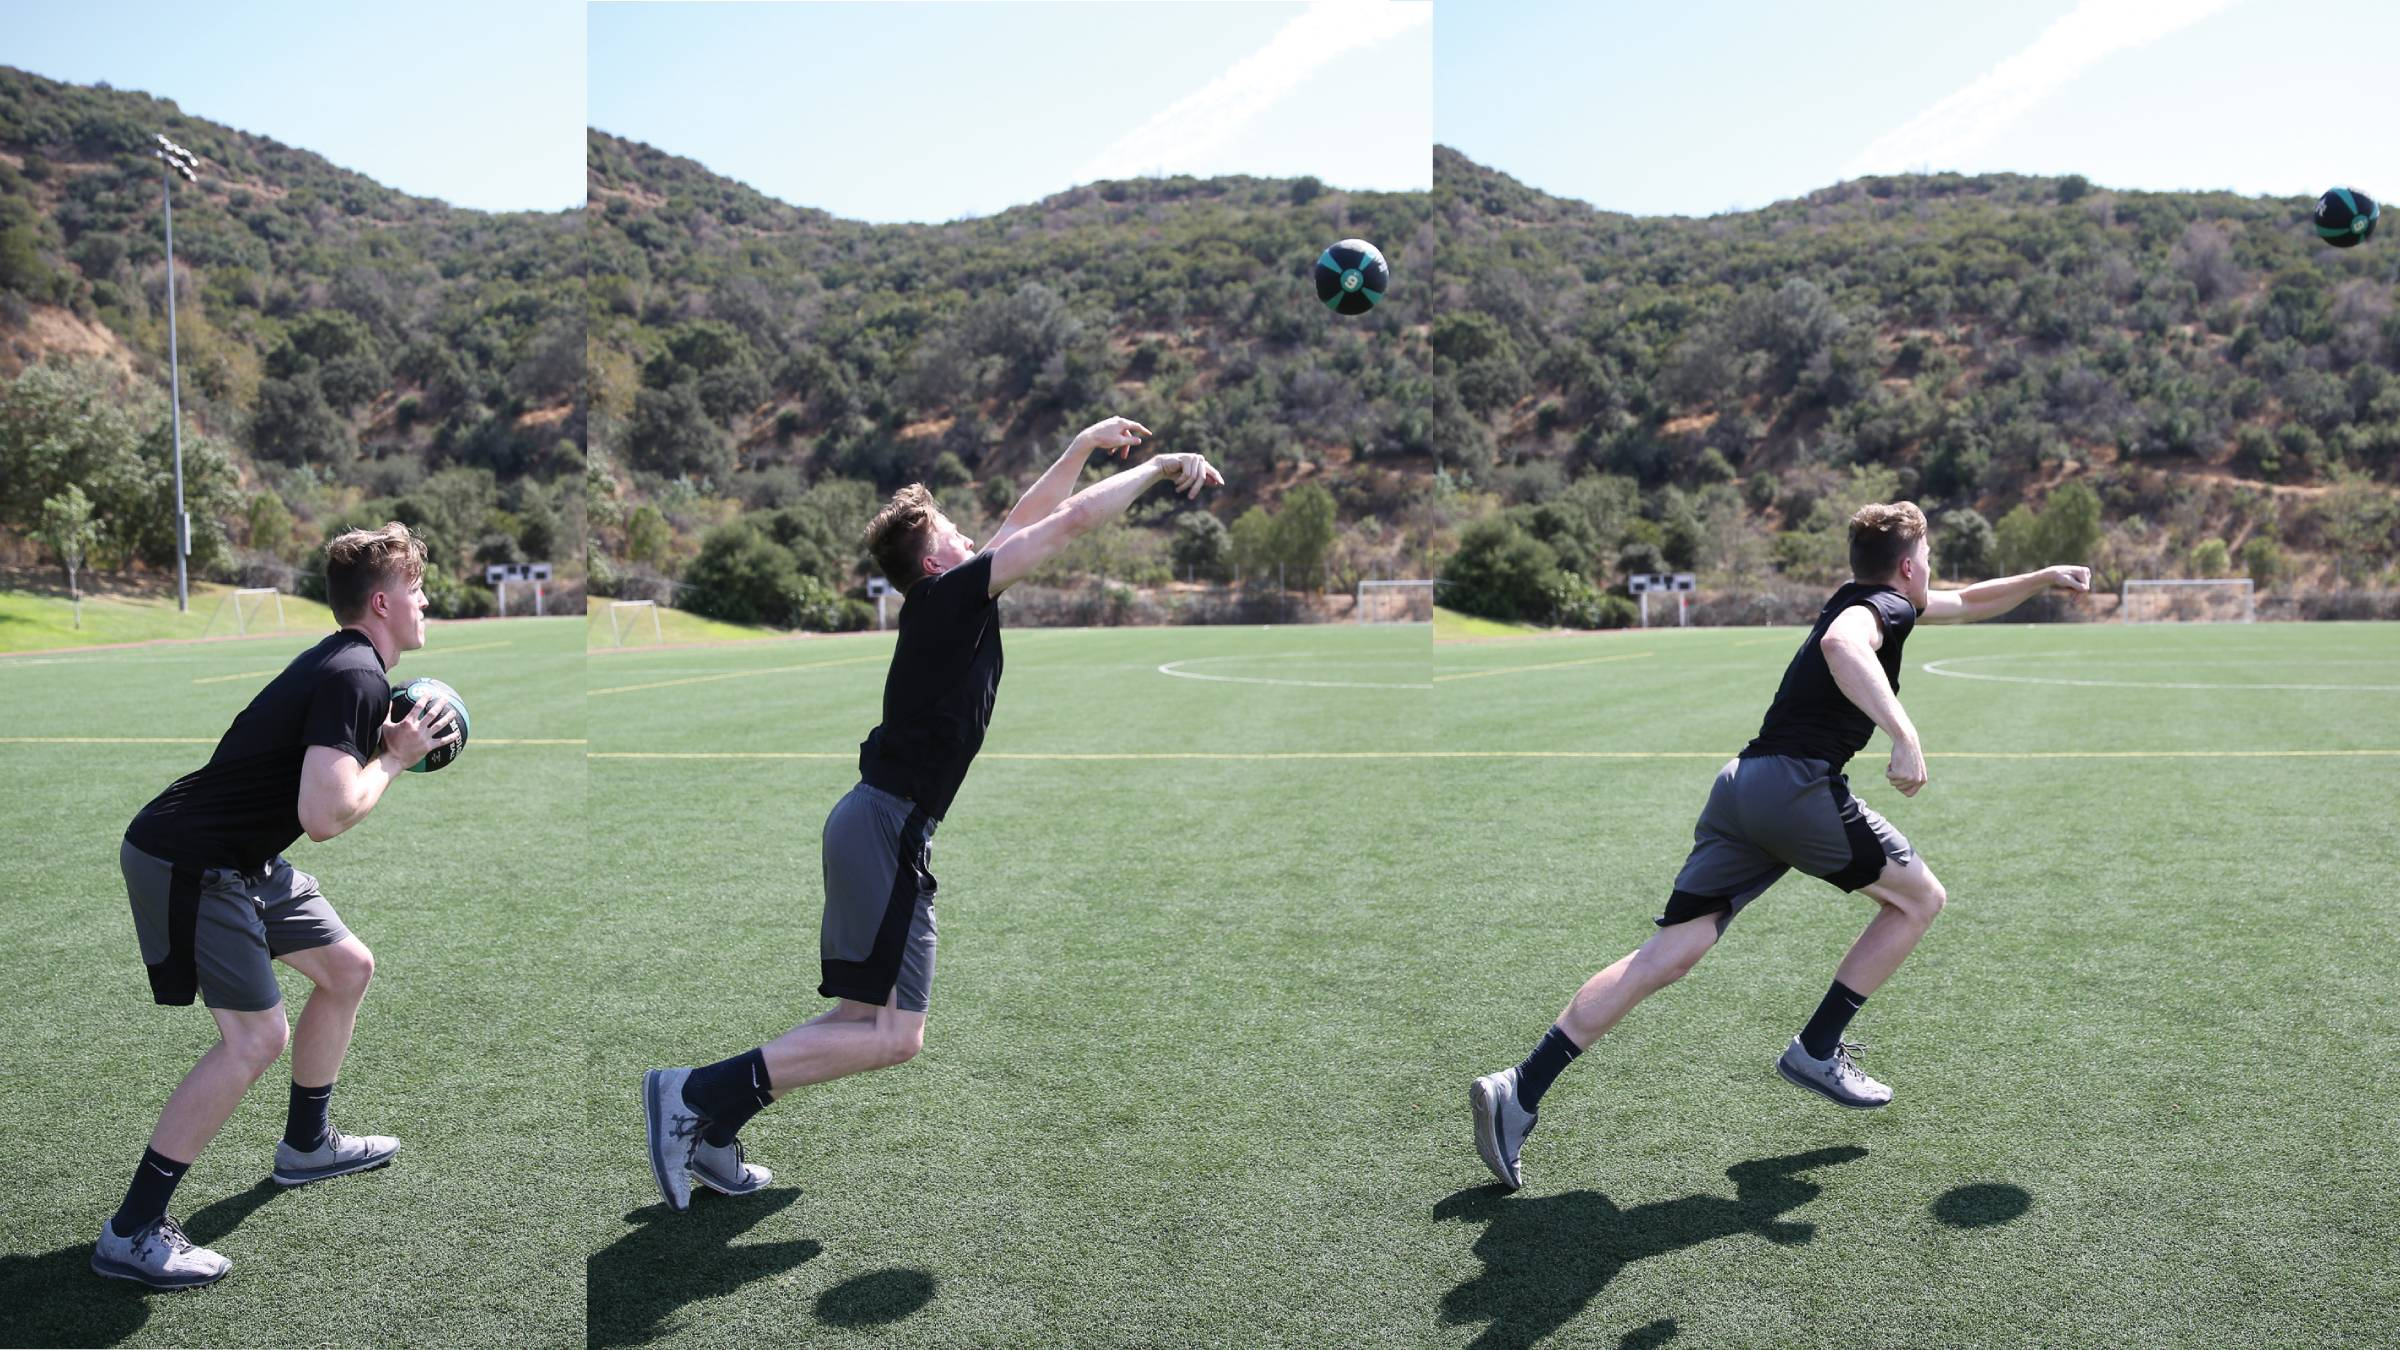 Composite of a man throwing a med ball and then sprinting